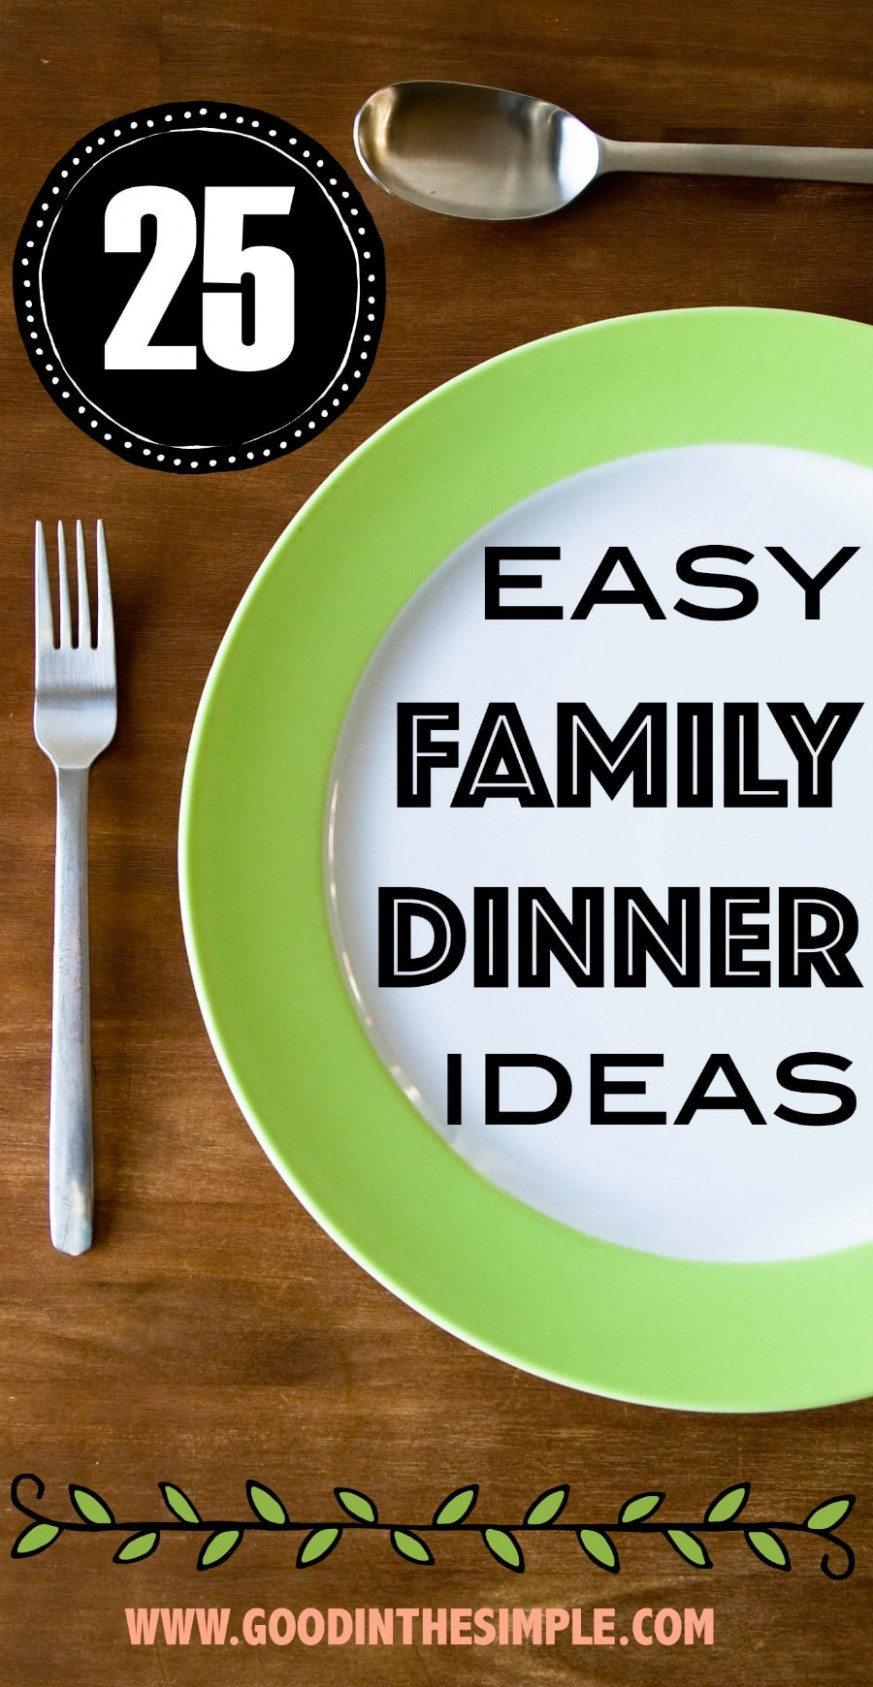 8 Easy Dinner Ideas | Good and Simple